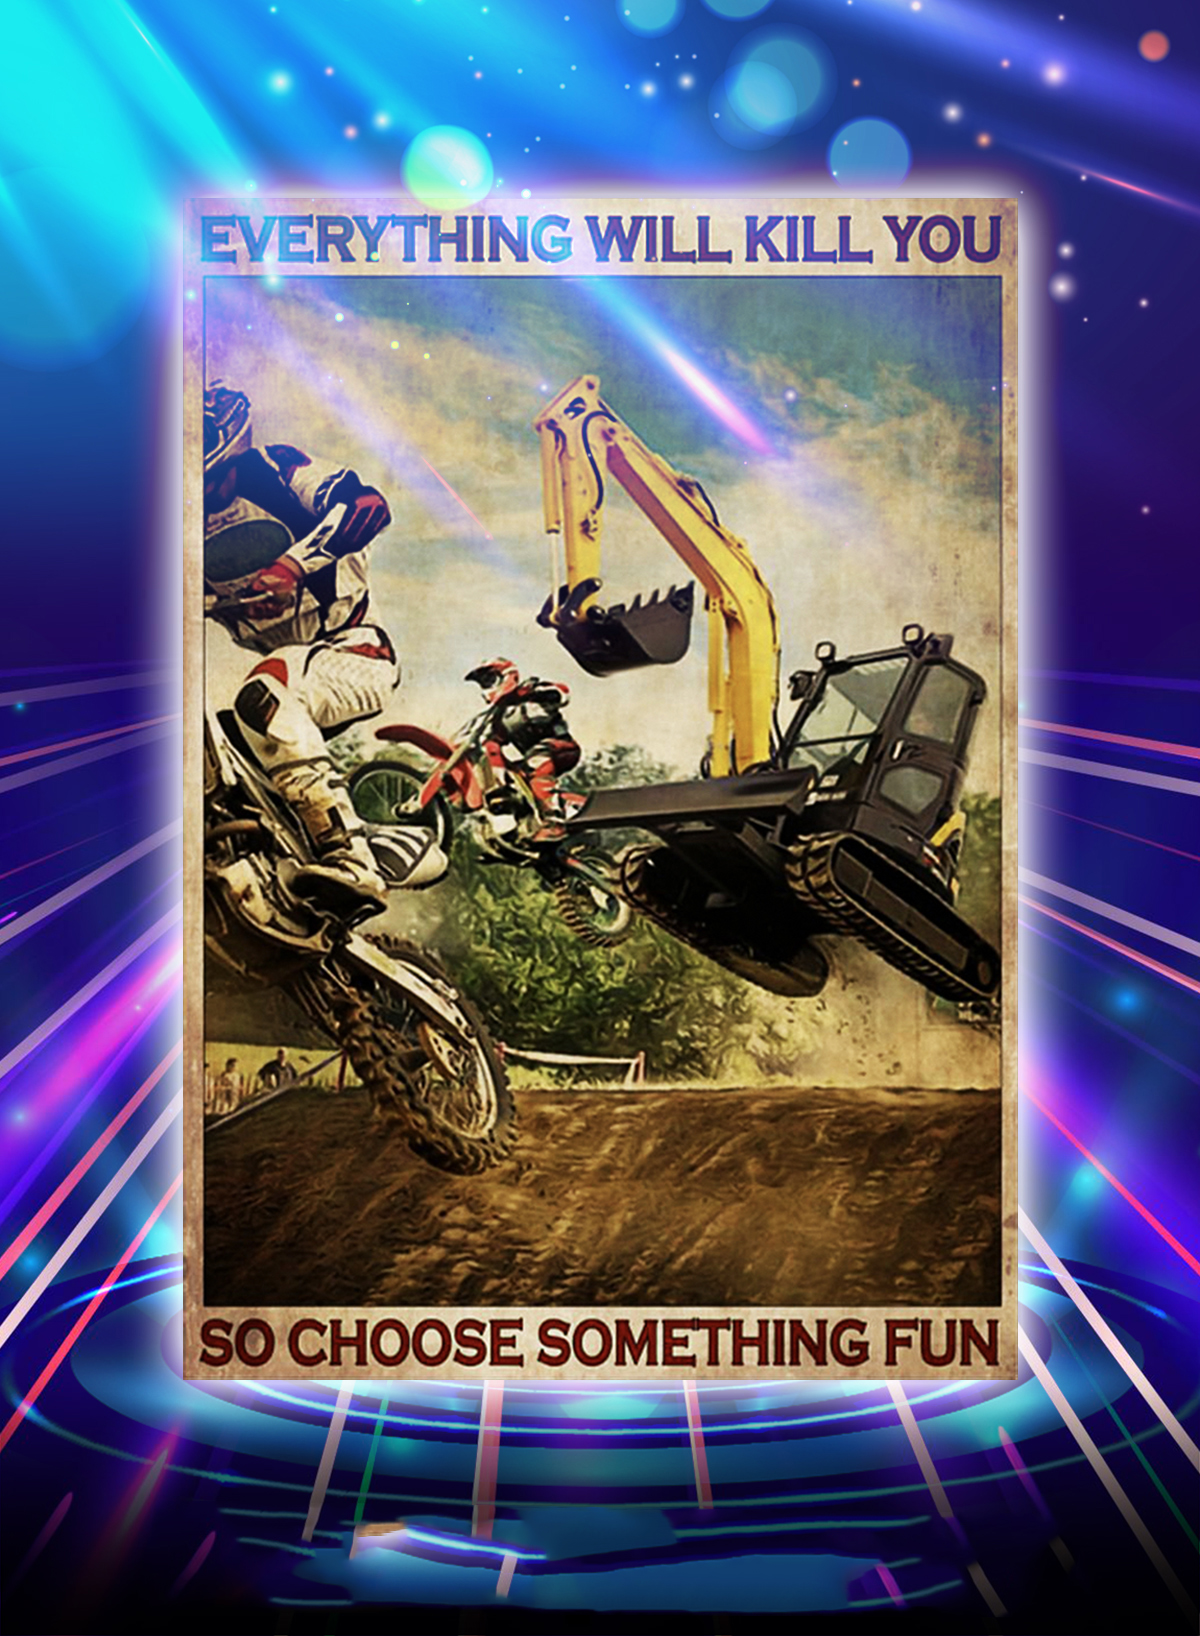 Motocross and excavator everything will kill you so choose something fun poster - A1